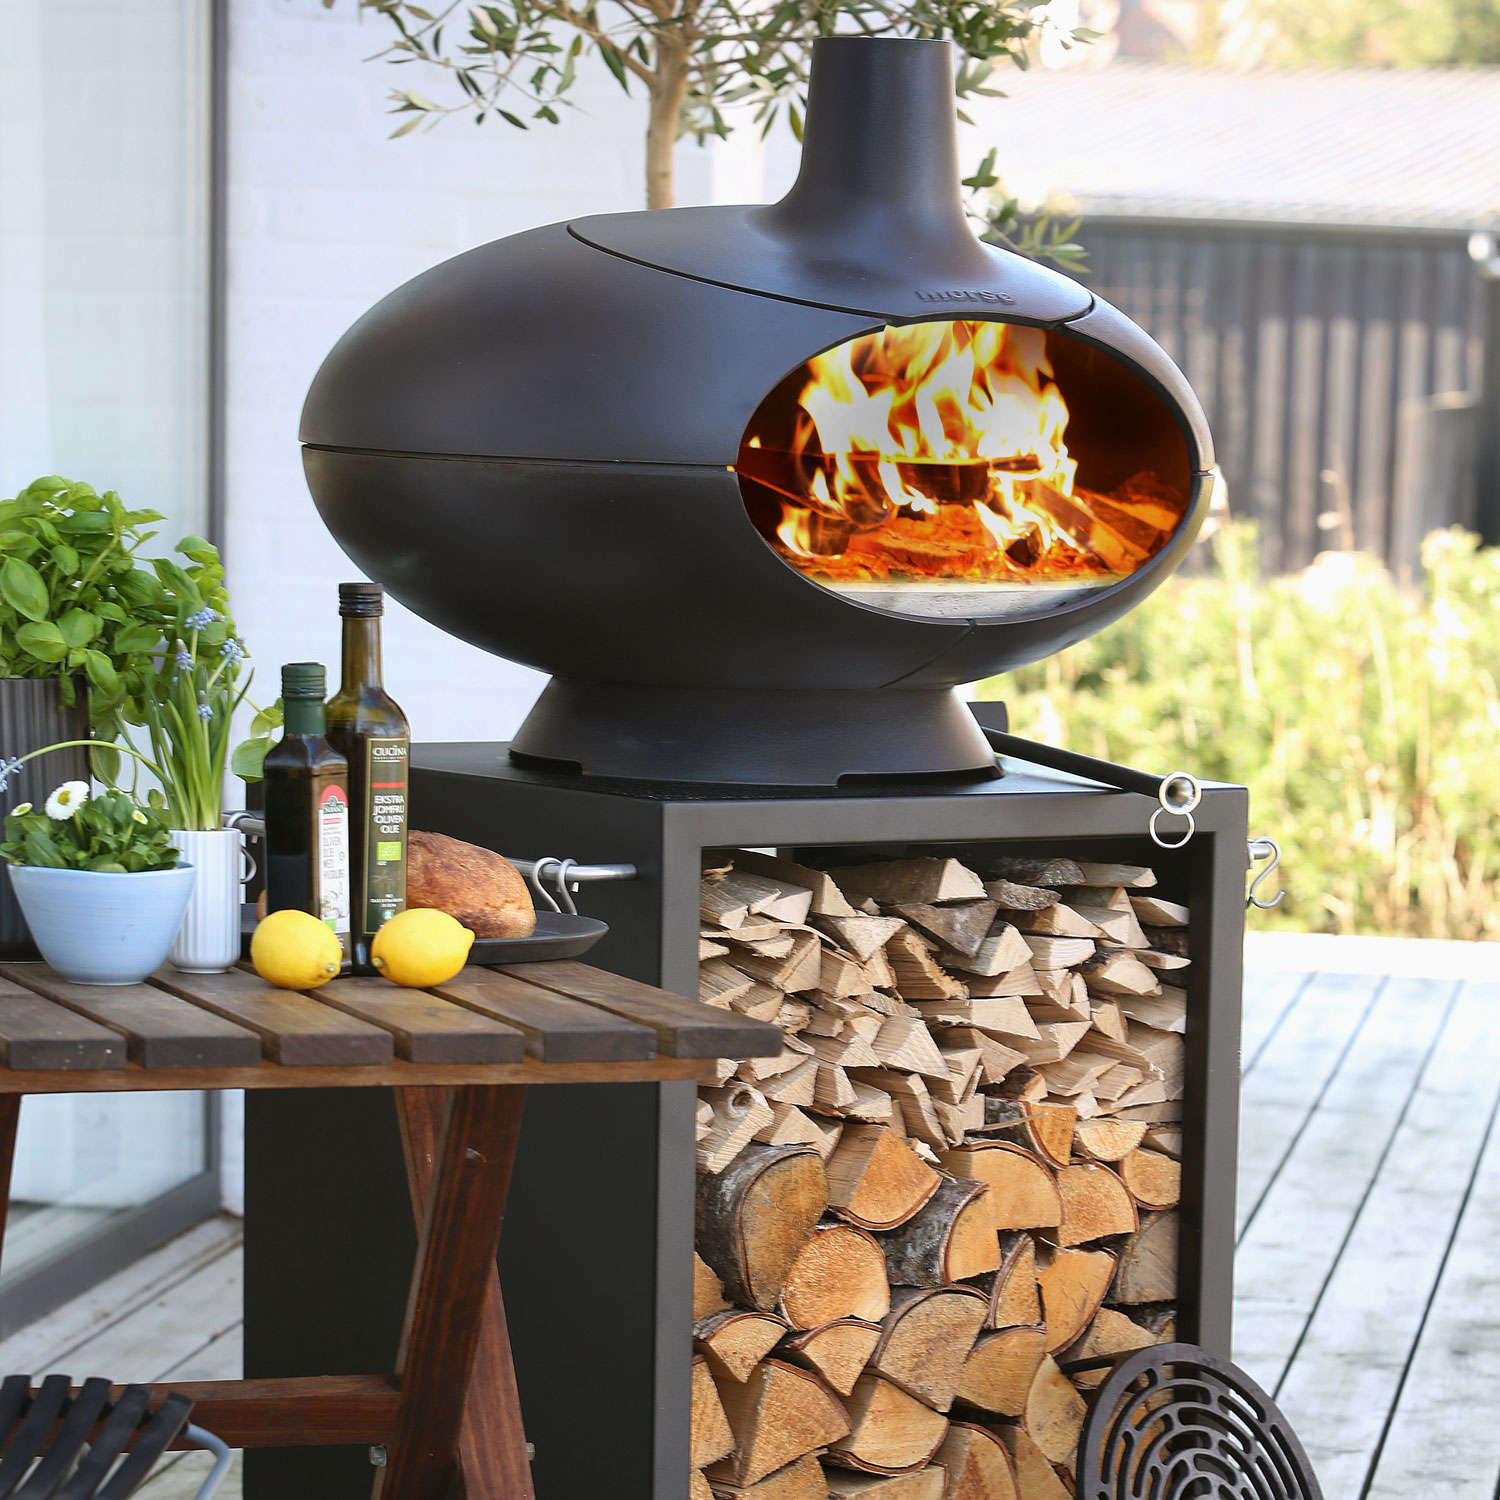 Morso Forno Terra outdoor oven set next to cooking ingredients such as olive oil, lemons and fresh herbs